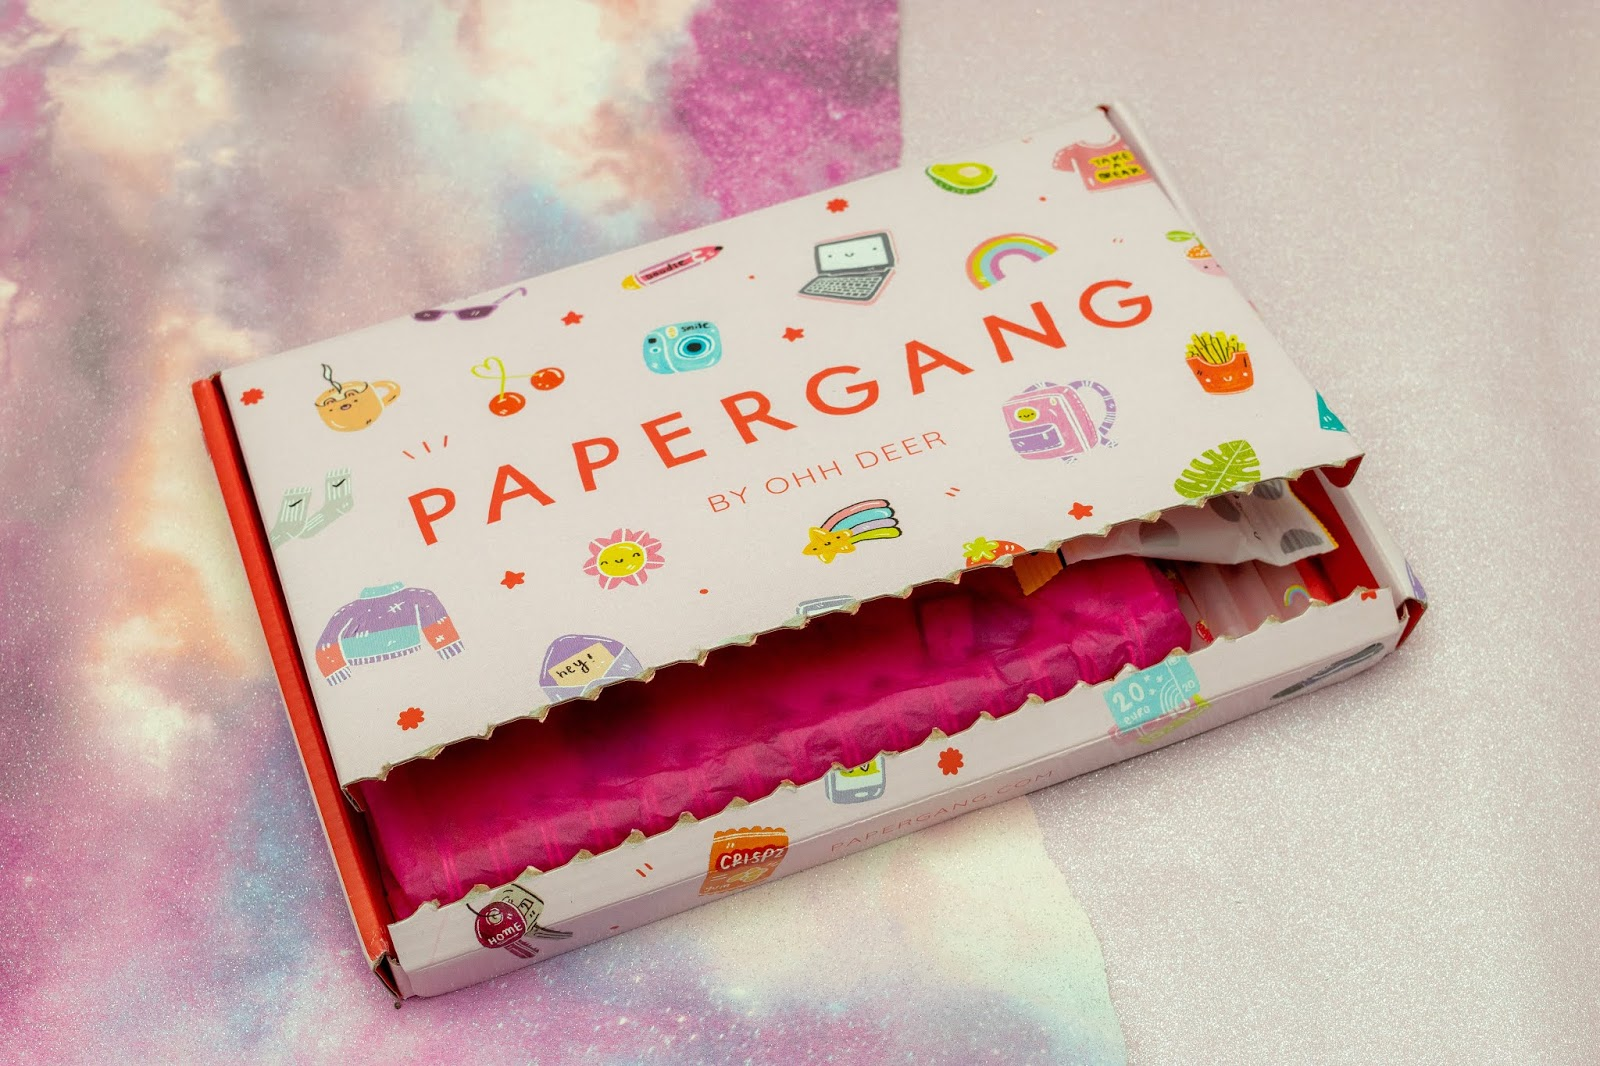 A letterbox size pink box with doodles all over and the papergang on the front.